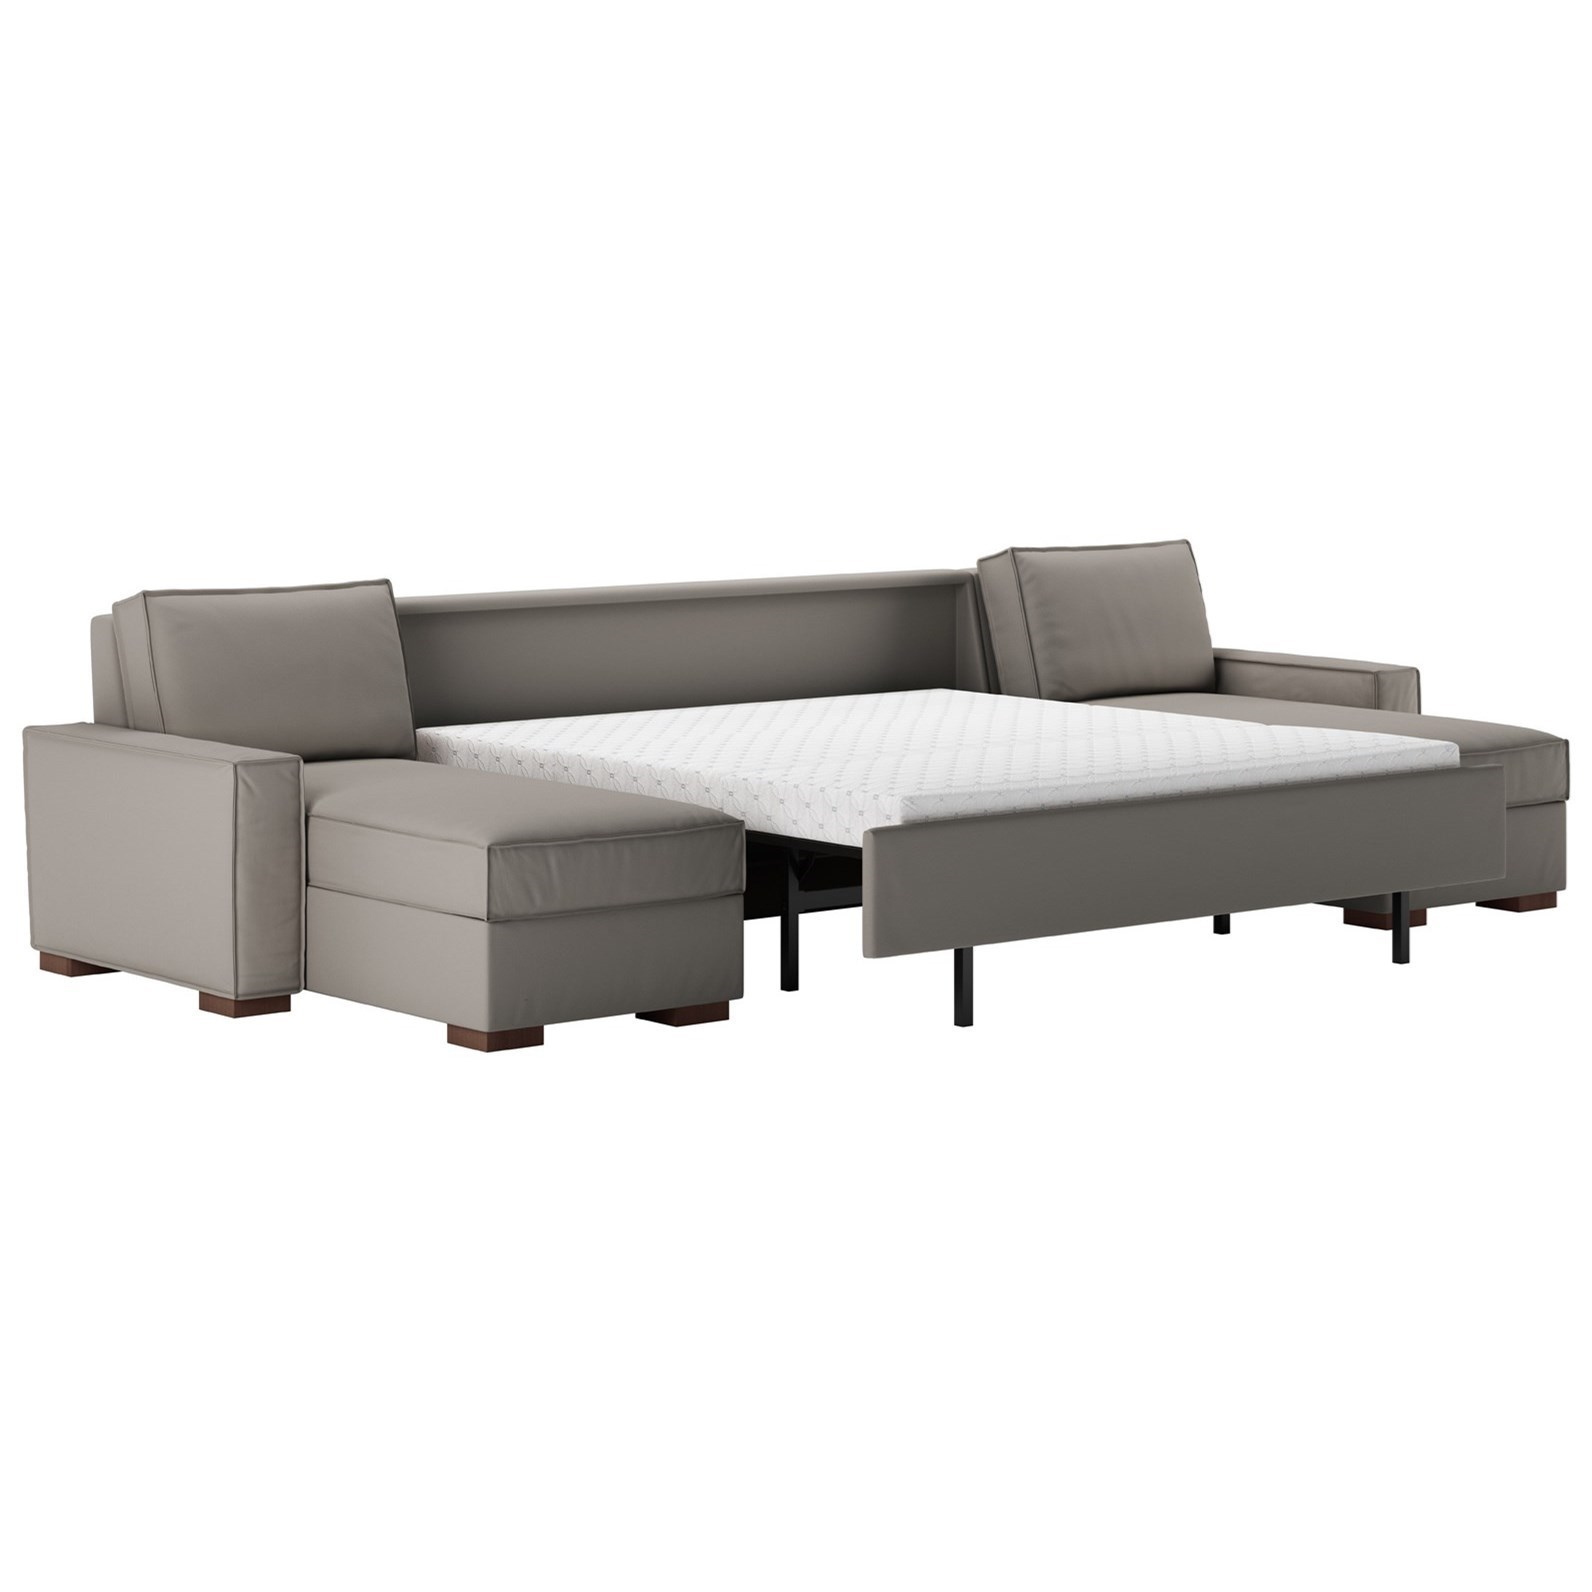 American Leather Madden3 Pc Sectional W/ King Sleeper U0026 2 Chaise ...